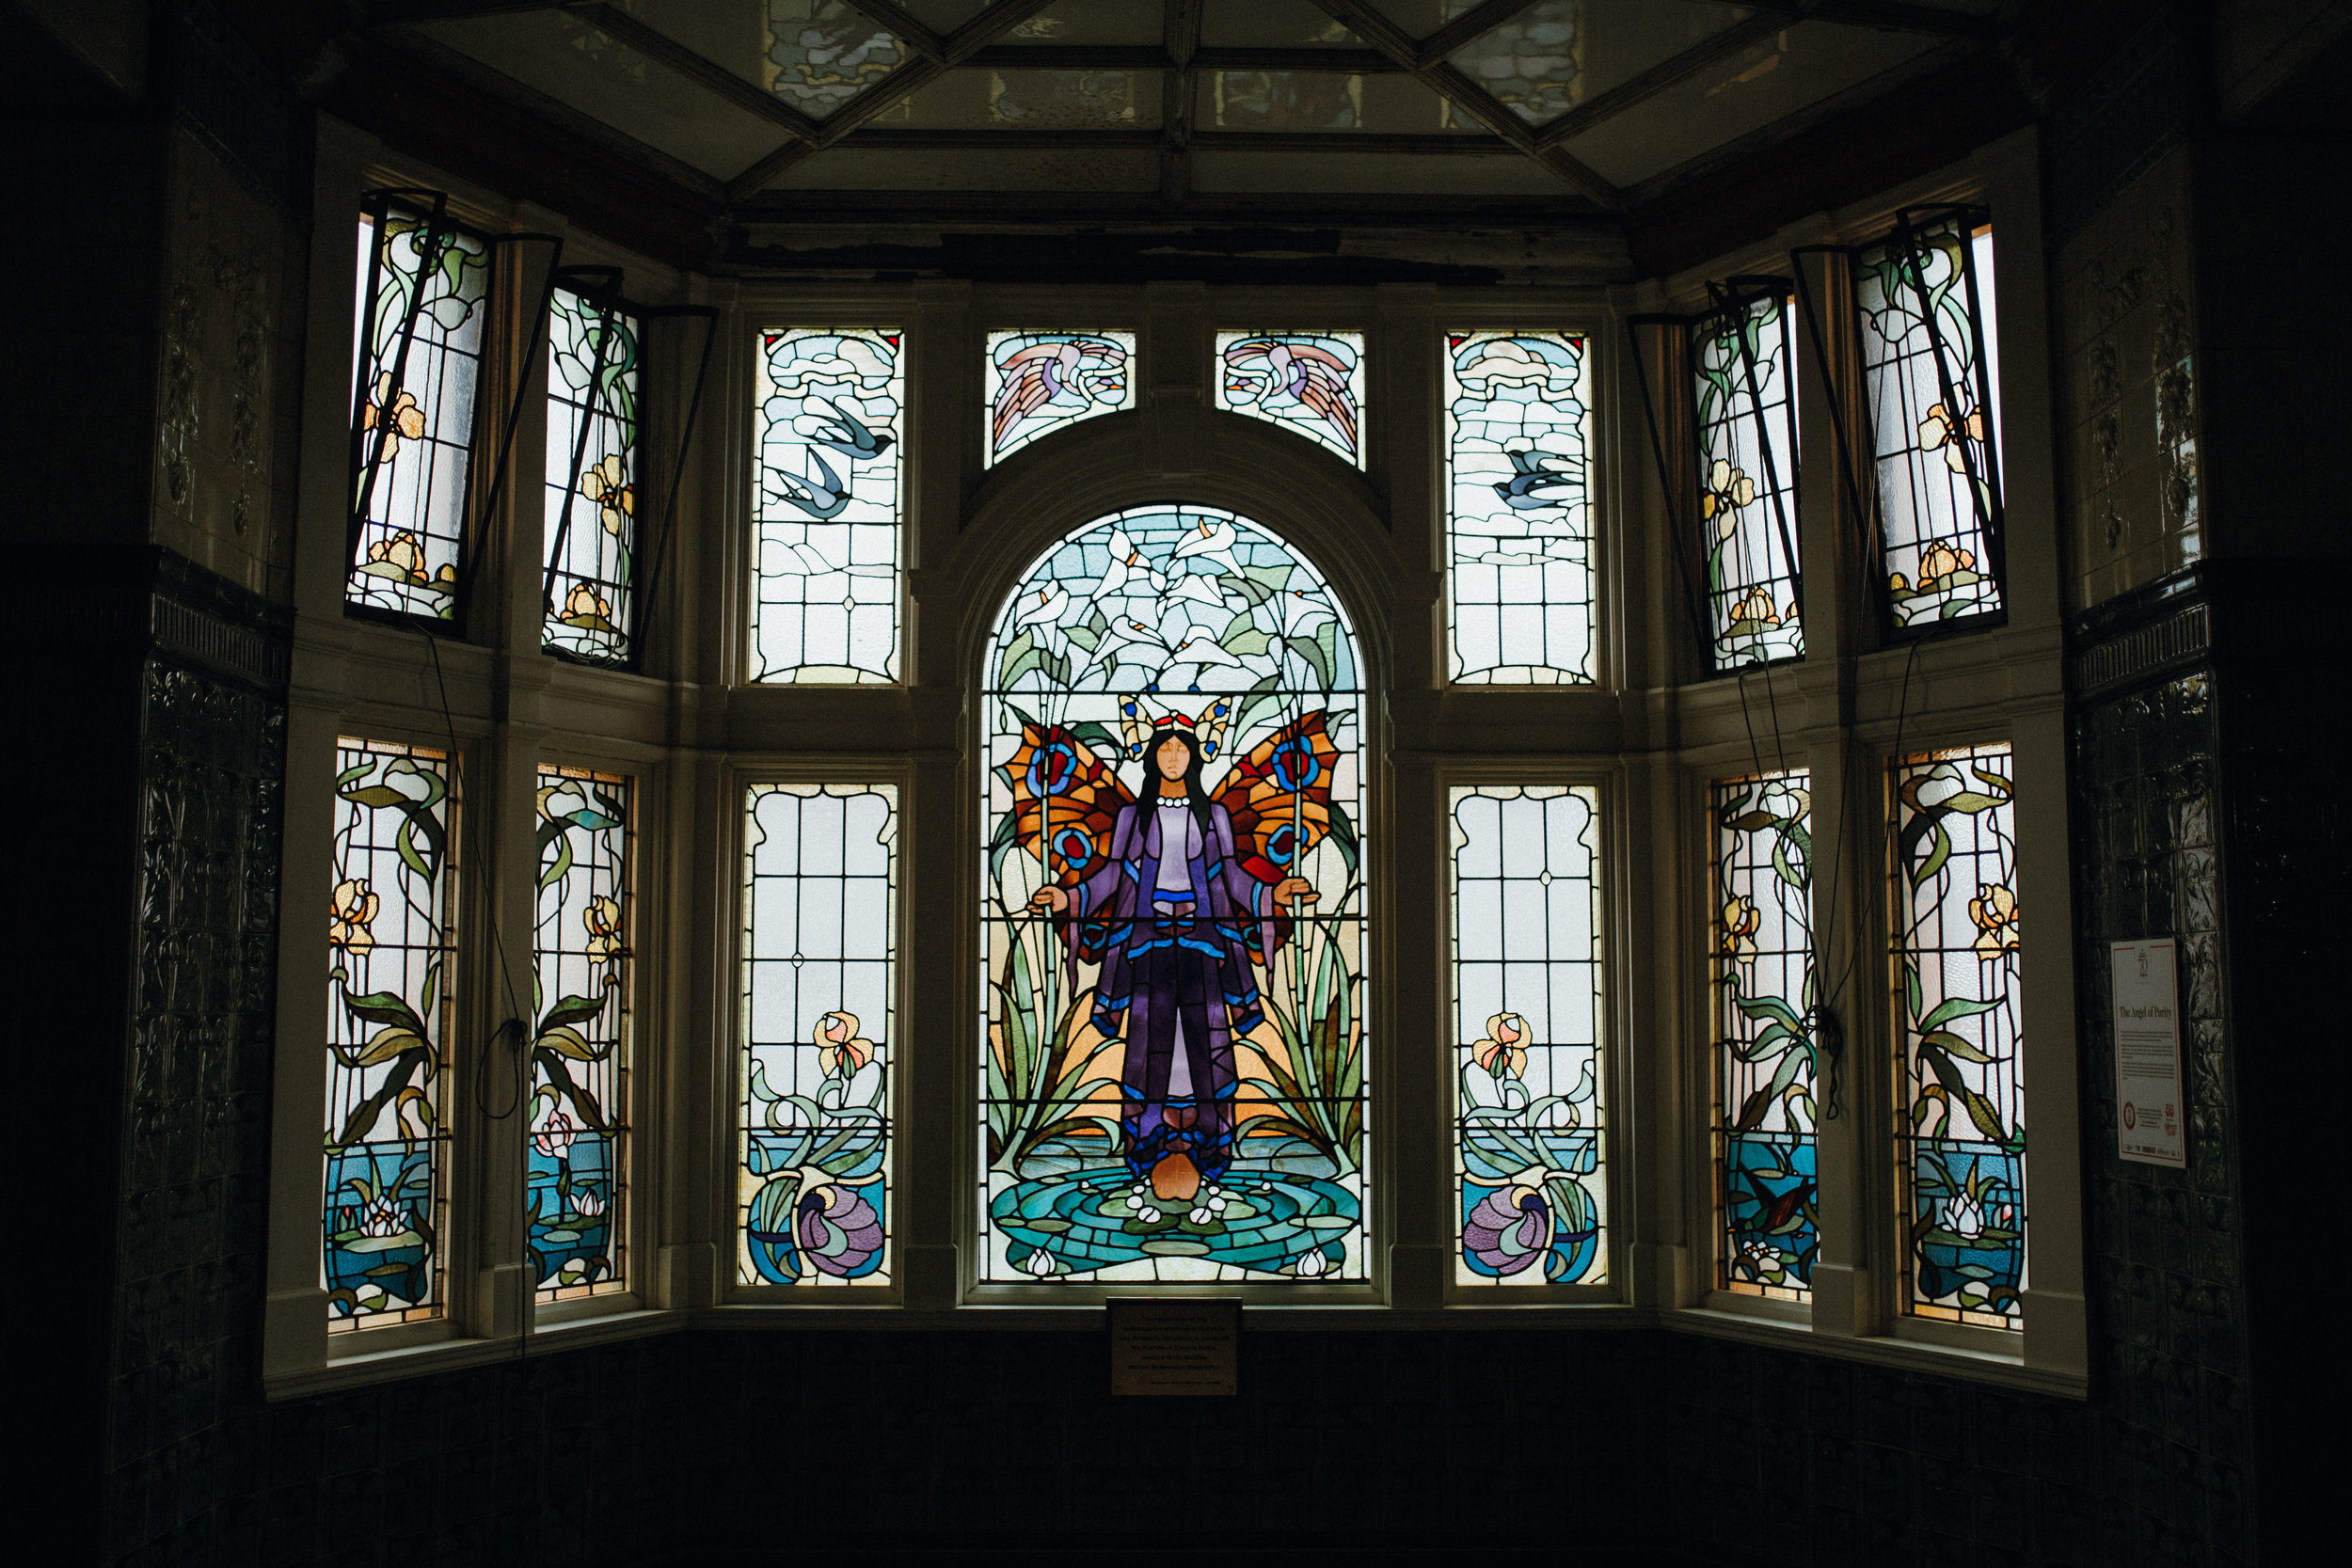 Victoria Baths stained glass window